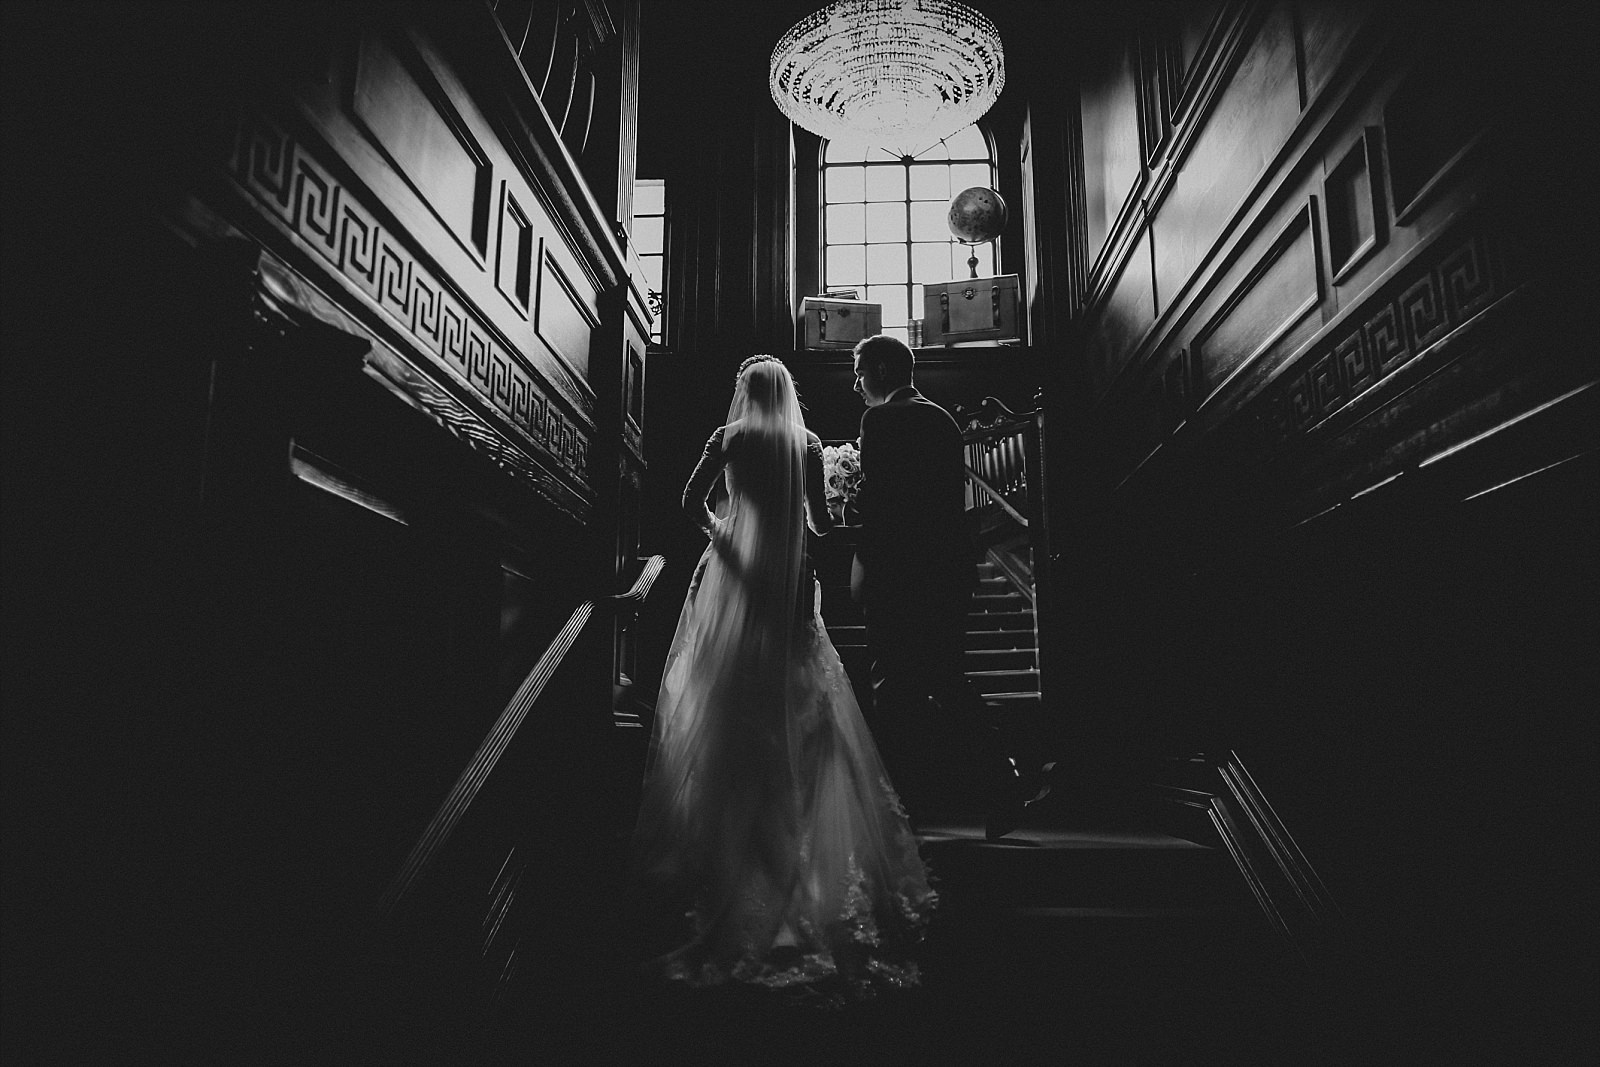 eaves hall wedding photographer uses the tremendous staircase at eaves hall